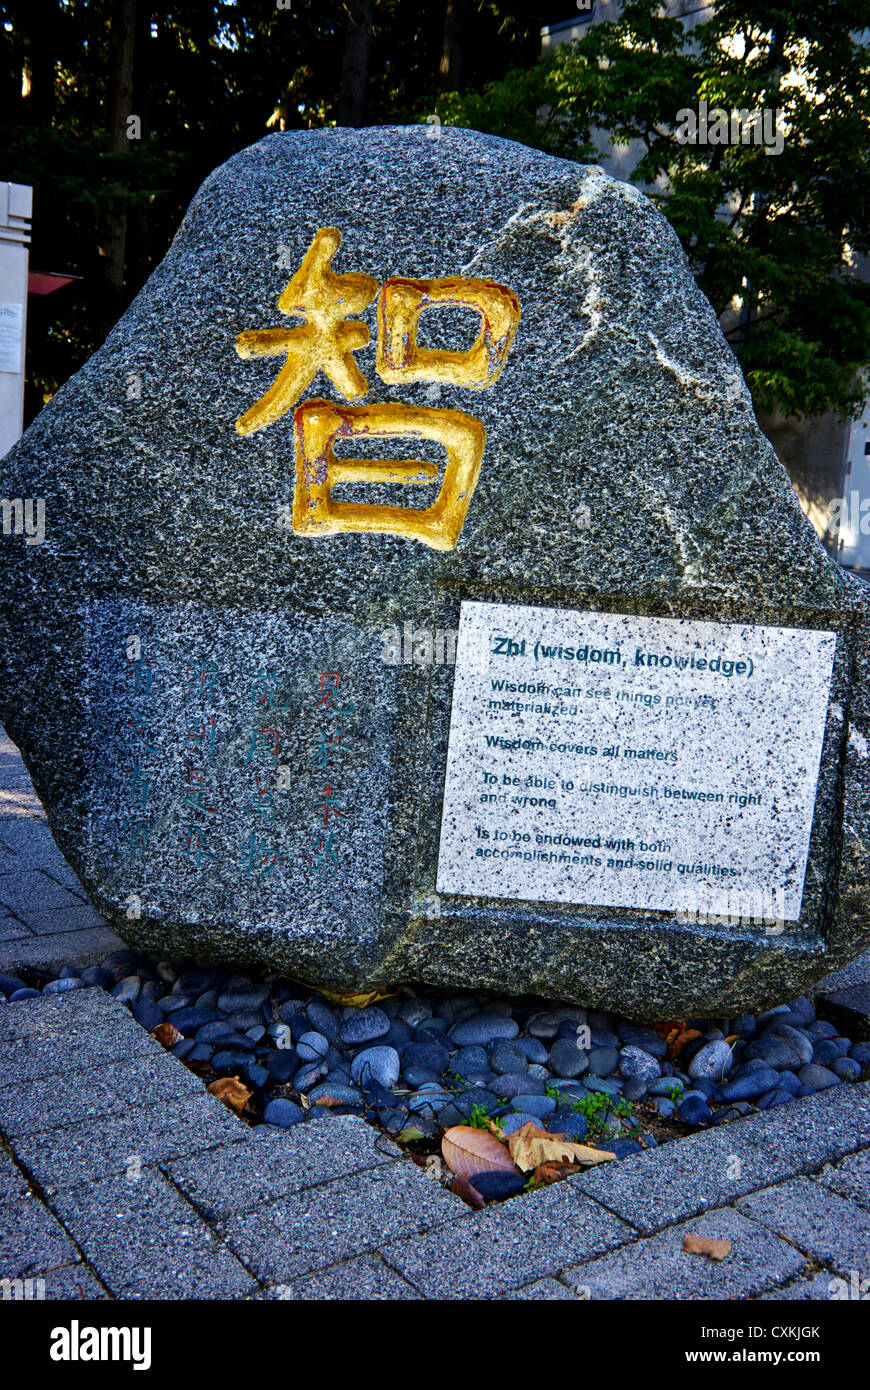 Sculpted granite stone with Chinese character for wisdom knowledge Asian Studies Centre UBC Vancouver - Stock Image